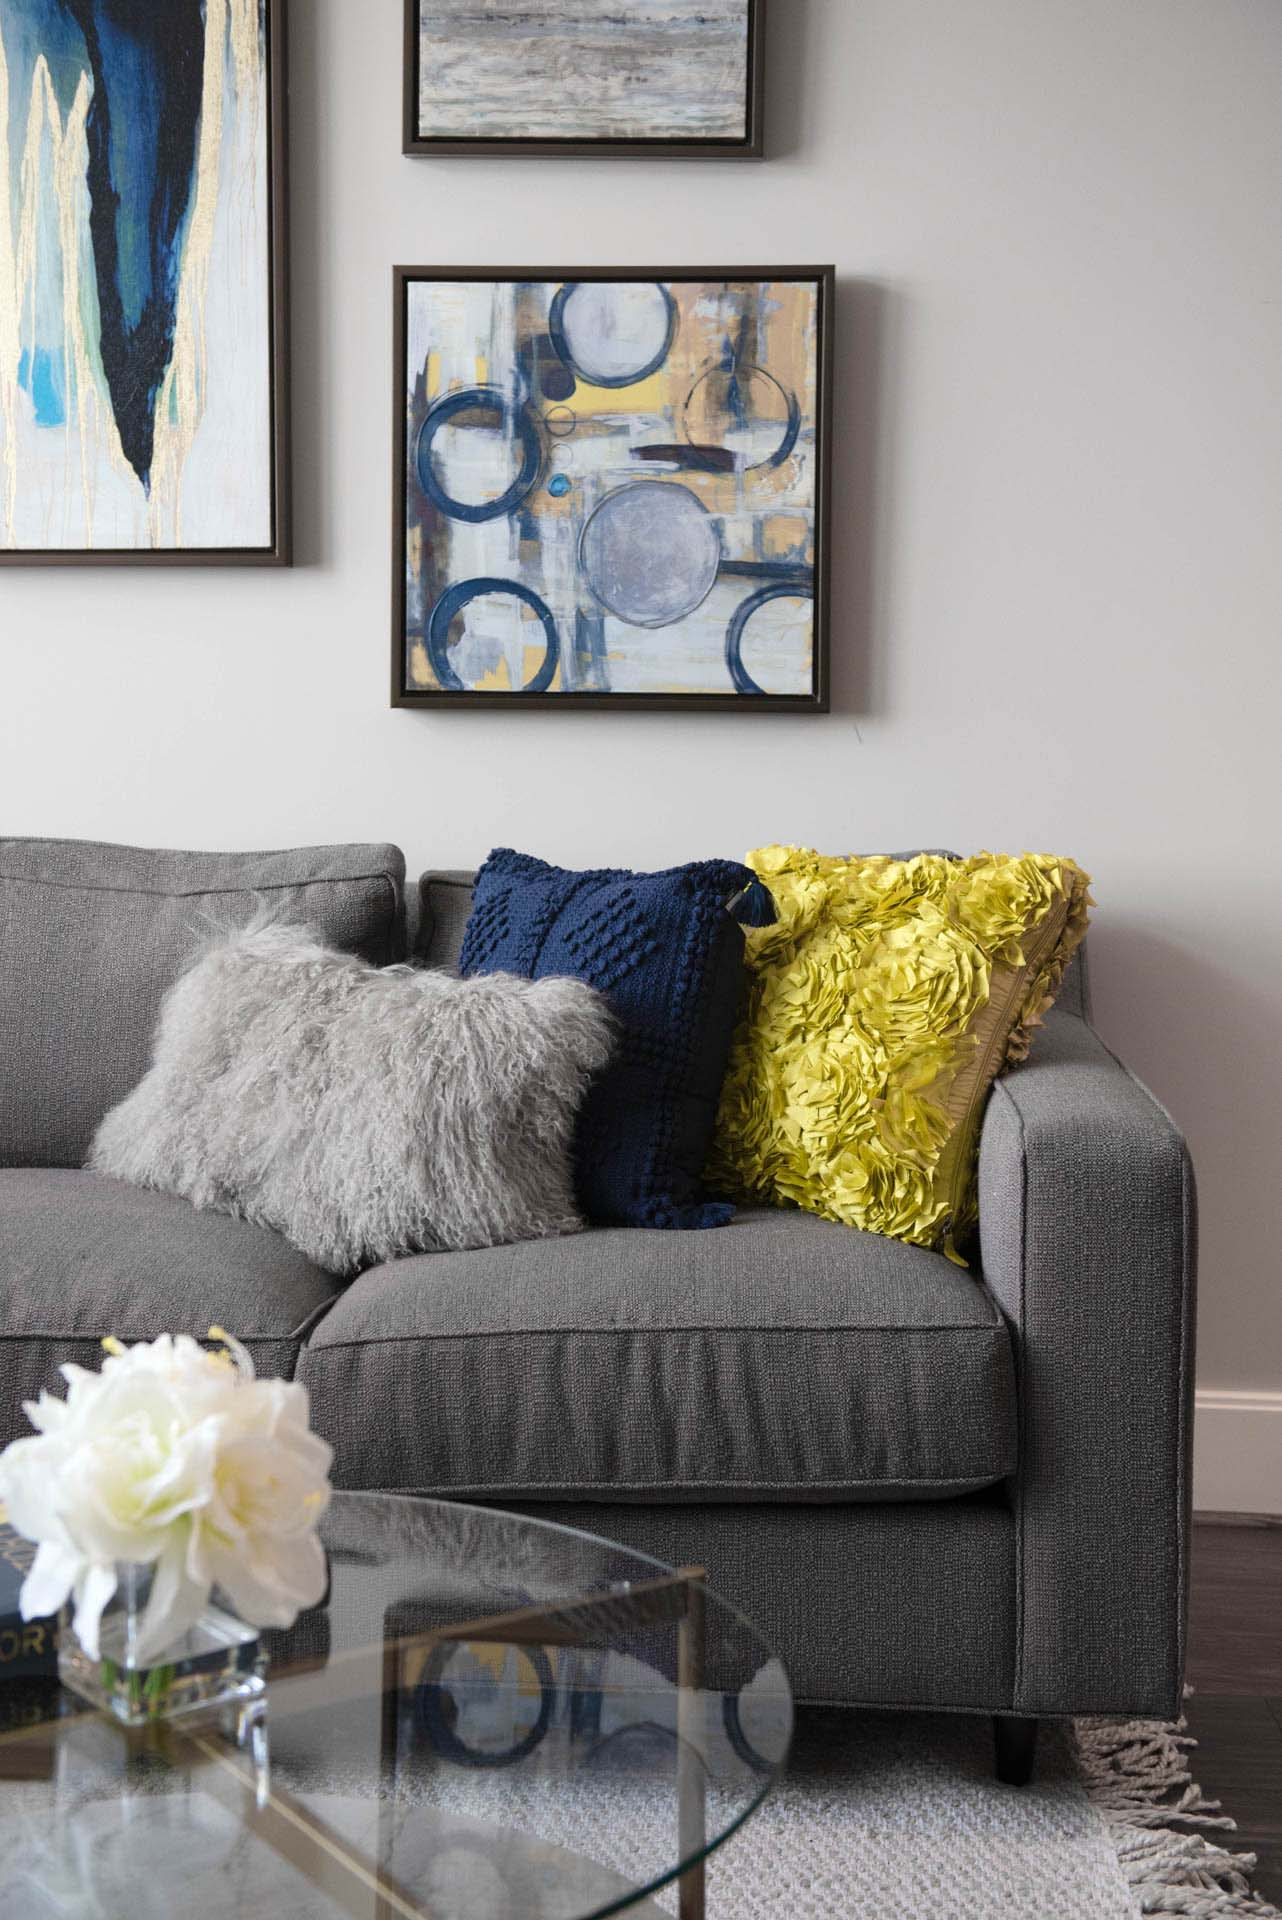 Close in detail of gray couch with blue and chartreuse accent pillows and abstract paintings hanging on wall above